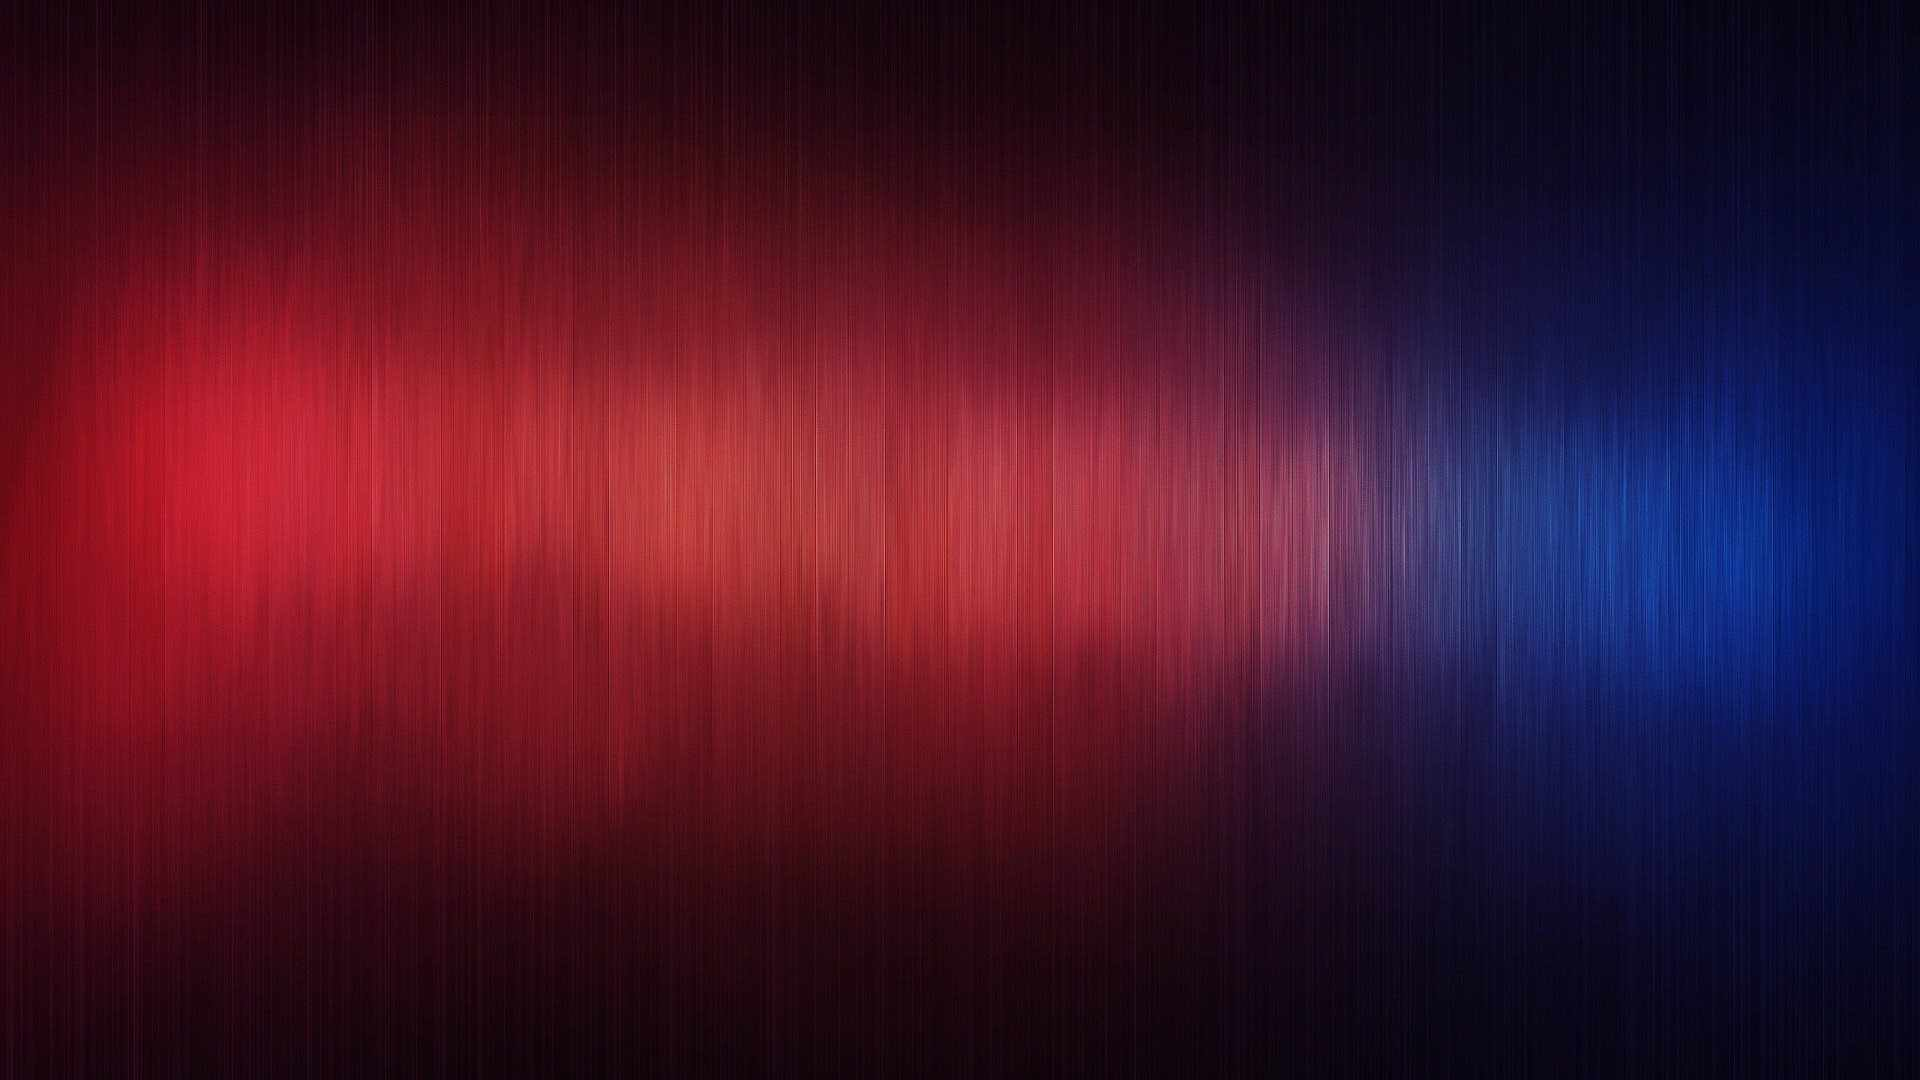 blue-and-red-wallpaper-8